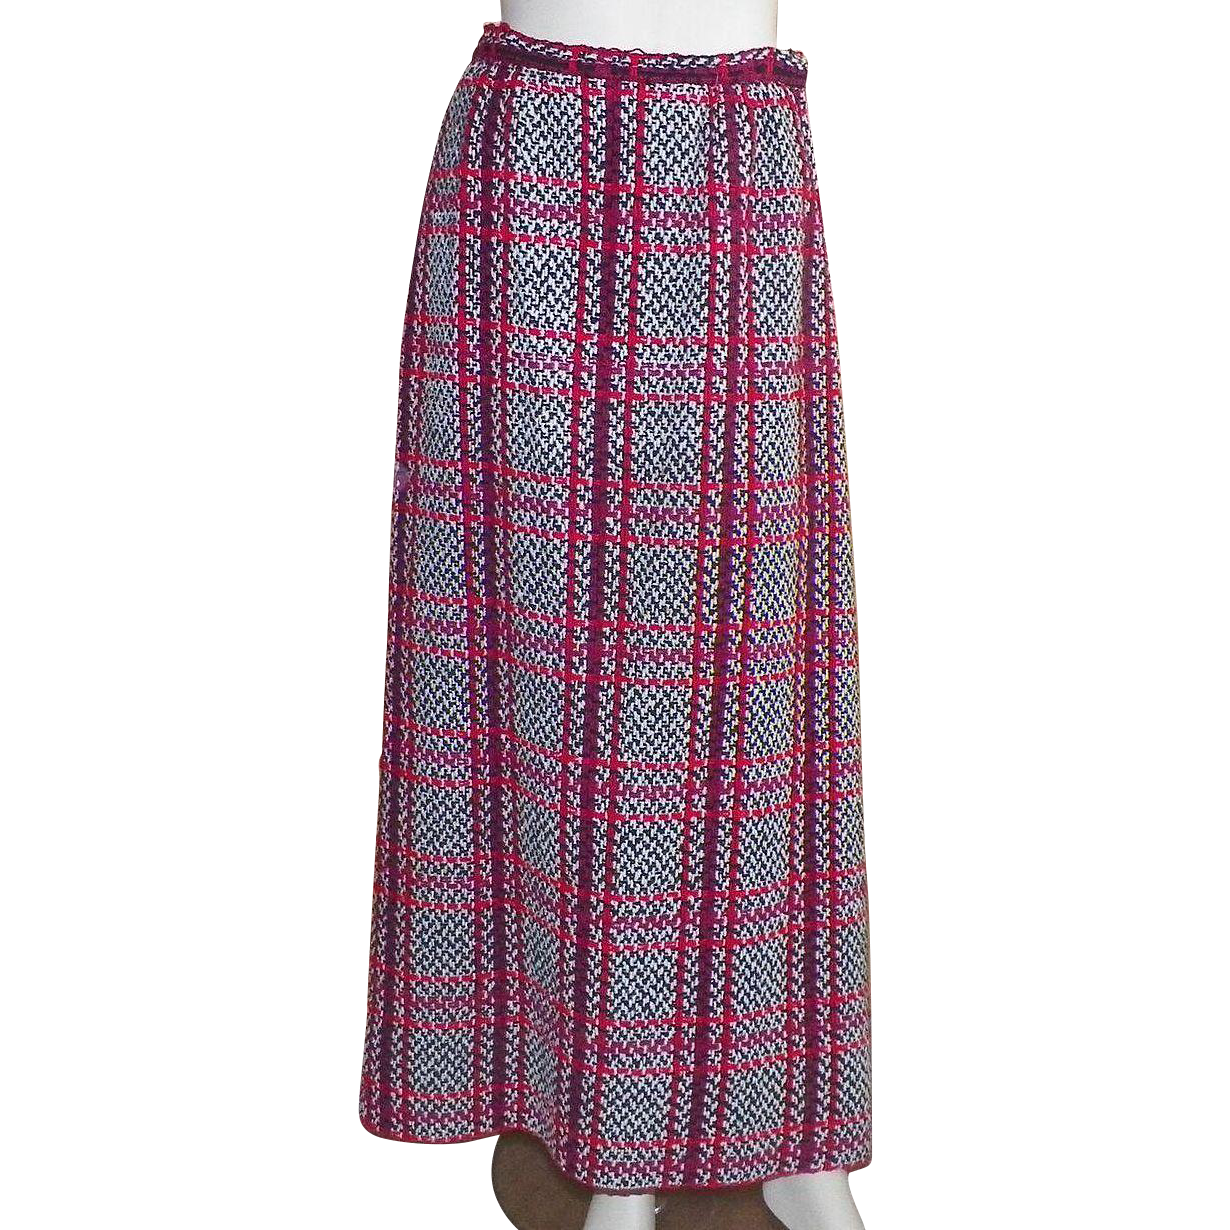 Vintage 1950's Nelly De Grab Wool Maxi Skirt